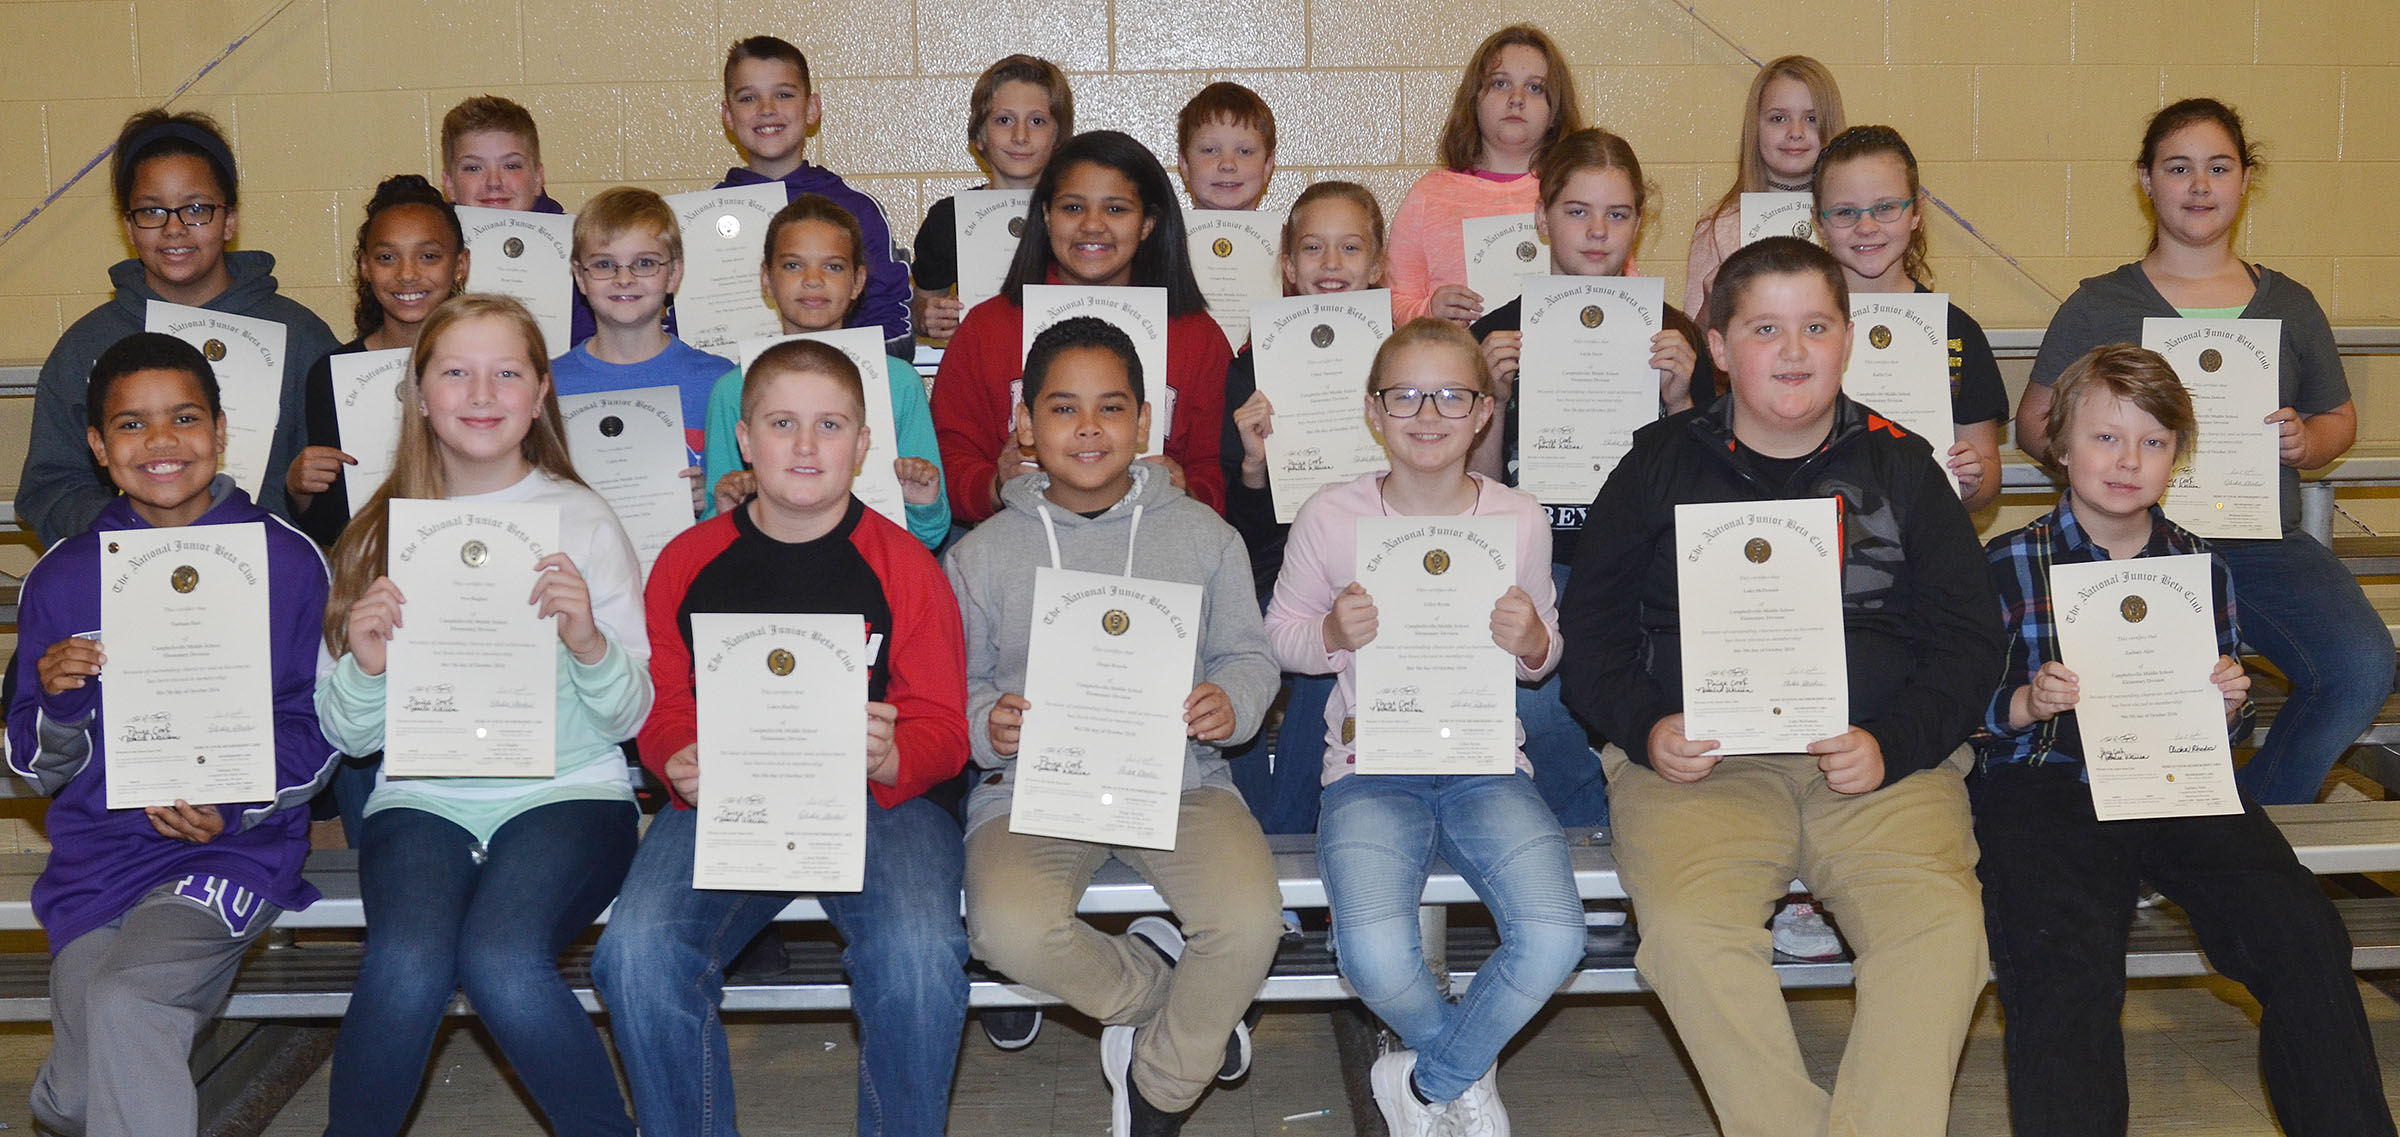 Beta members inducted on Tuesday, Nov. 22, include fifth-graders, from left, front, Tashaun Hart, Ava Hughes, Lance Knifley, Diego Noyola, Lillee Byrne, Luke McDonald and Zachary Akin. Second row, Kiara Graves, Cadence Hagy, Caleb Holt, Arisha Francis, Kehleigh Vaught, Chloe Thompson, Layla Steen, Karlie Cox and Brianna Dobson. Back, Ryan Grubbs, Kaden Bloyd, Kaleb Gray, Conner Rinehart, Lexi Garvin and Jaylie Moore. Absent from the photo are Jovi Bowen, Aryanna Britton, Ellington Gowin and Alexis Sharp.